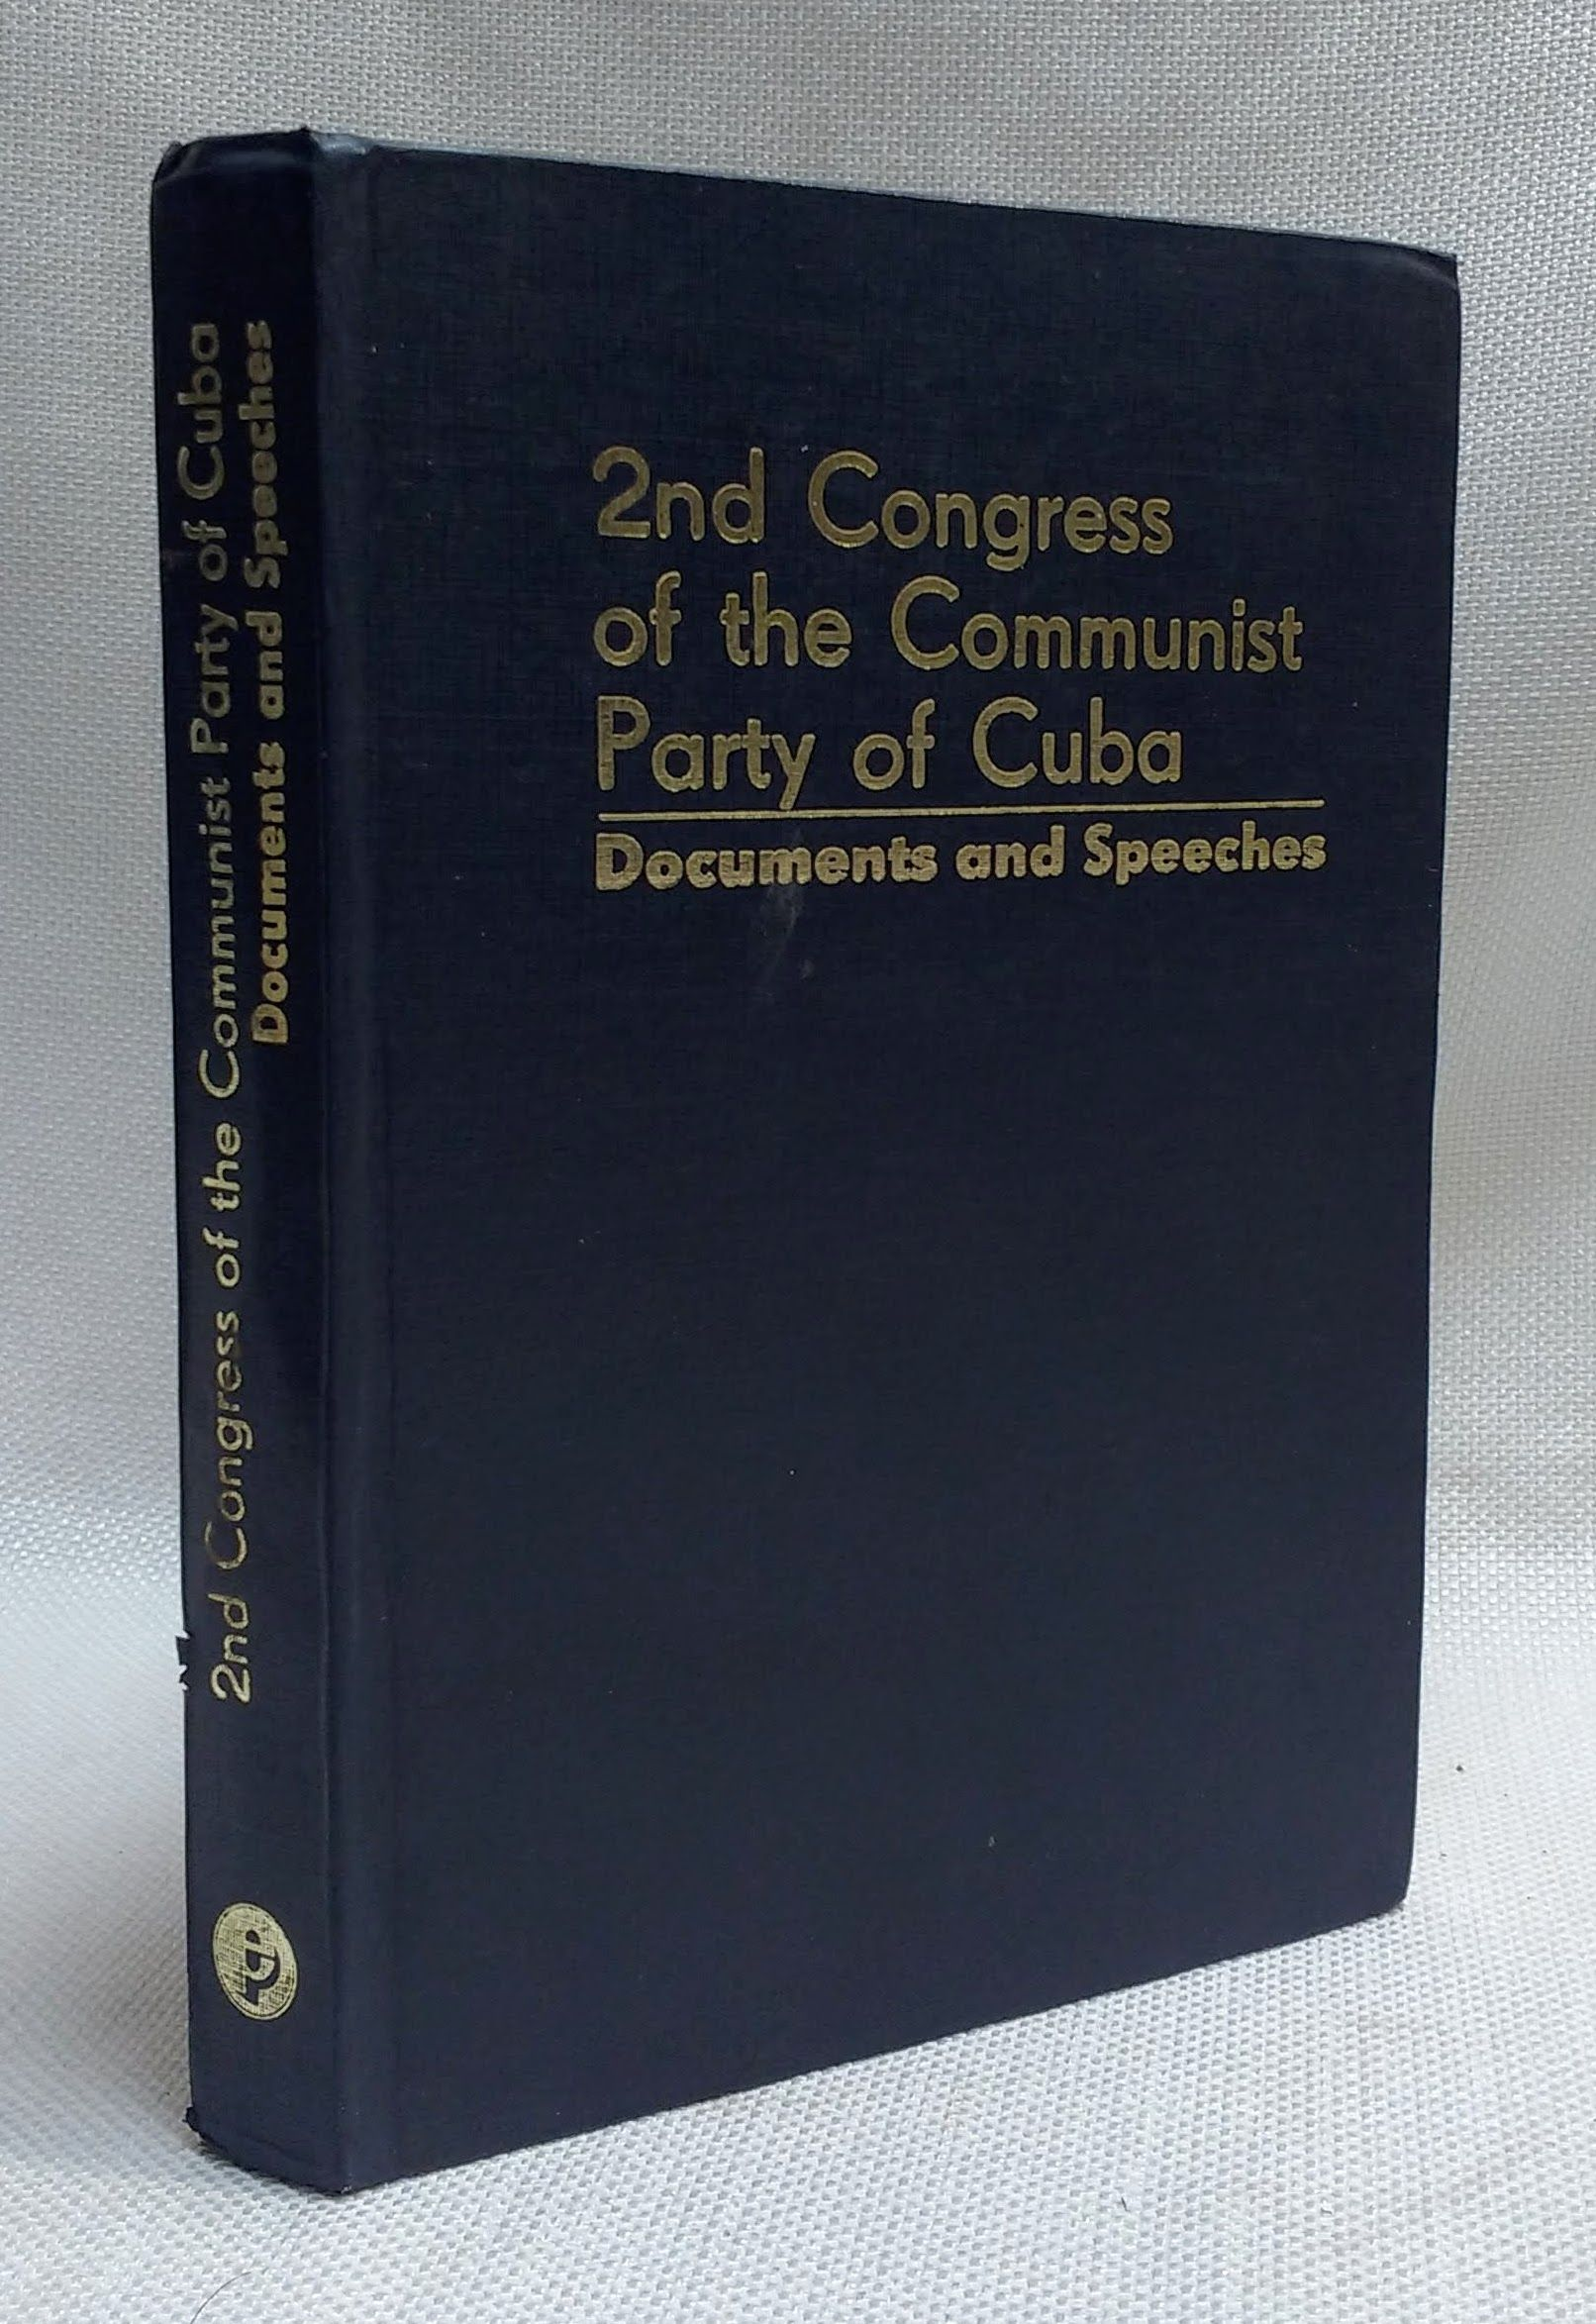 2nd Congress of the Communist Party of Cuba: Documents and Speeches